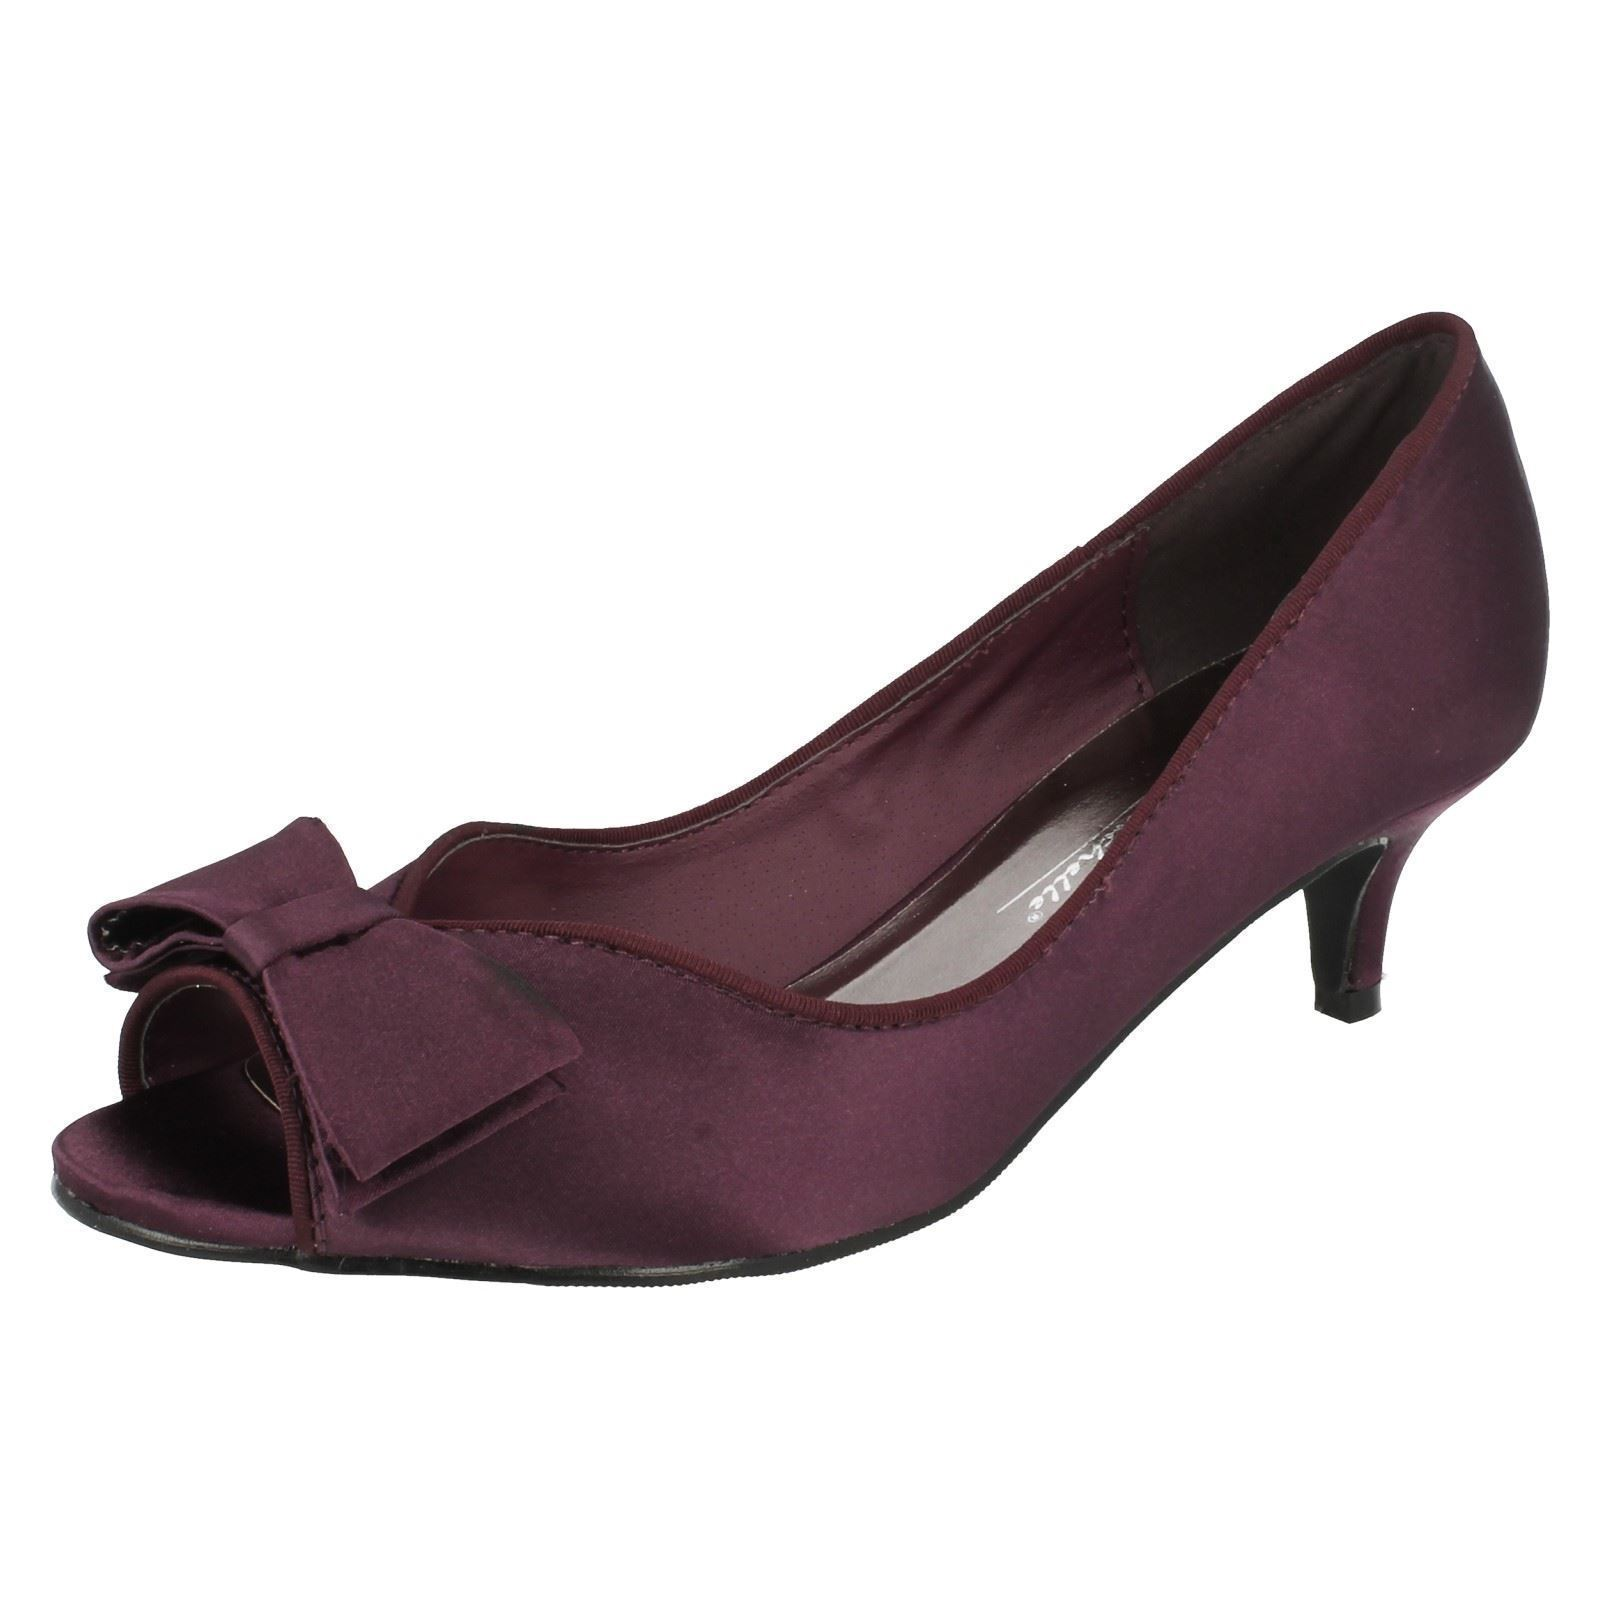 Anne Michelle Damen f10308 Satin Peeptoe Pumps lila 4x8 (29b)